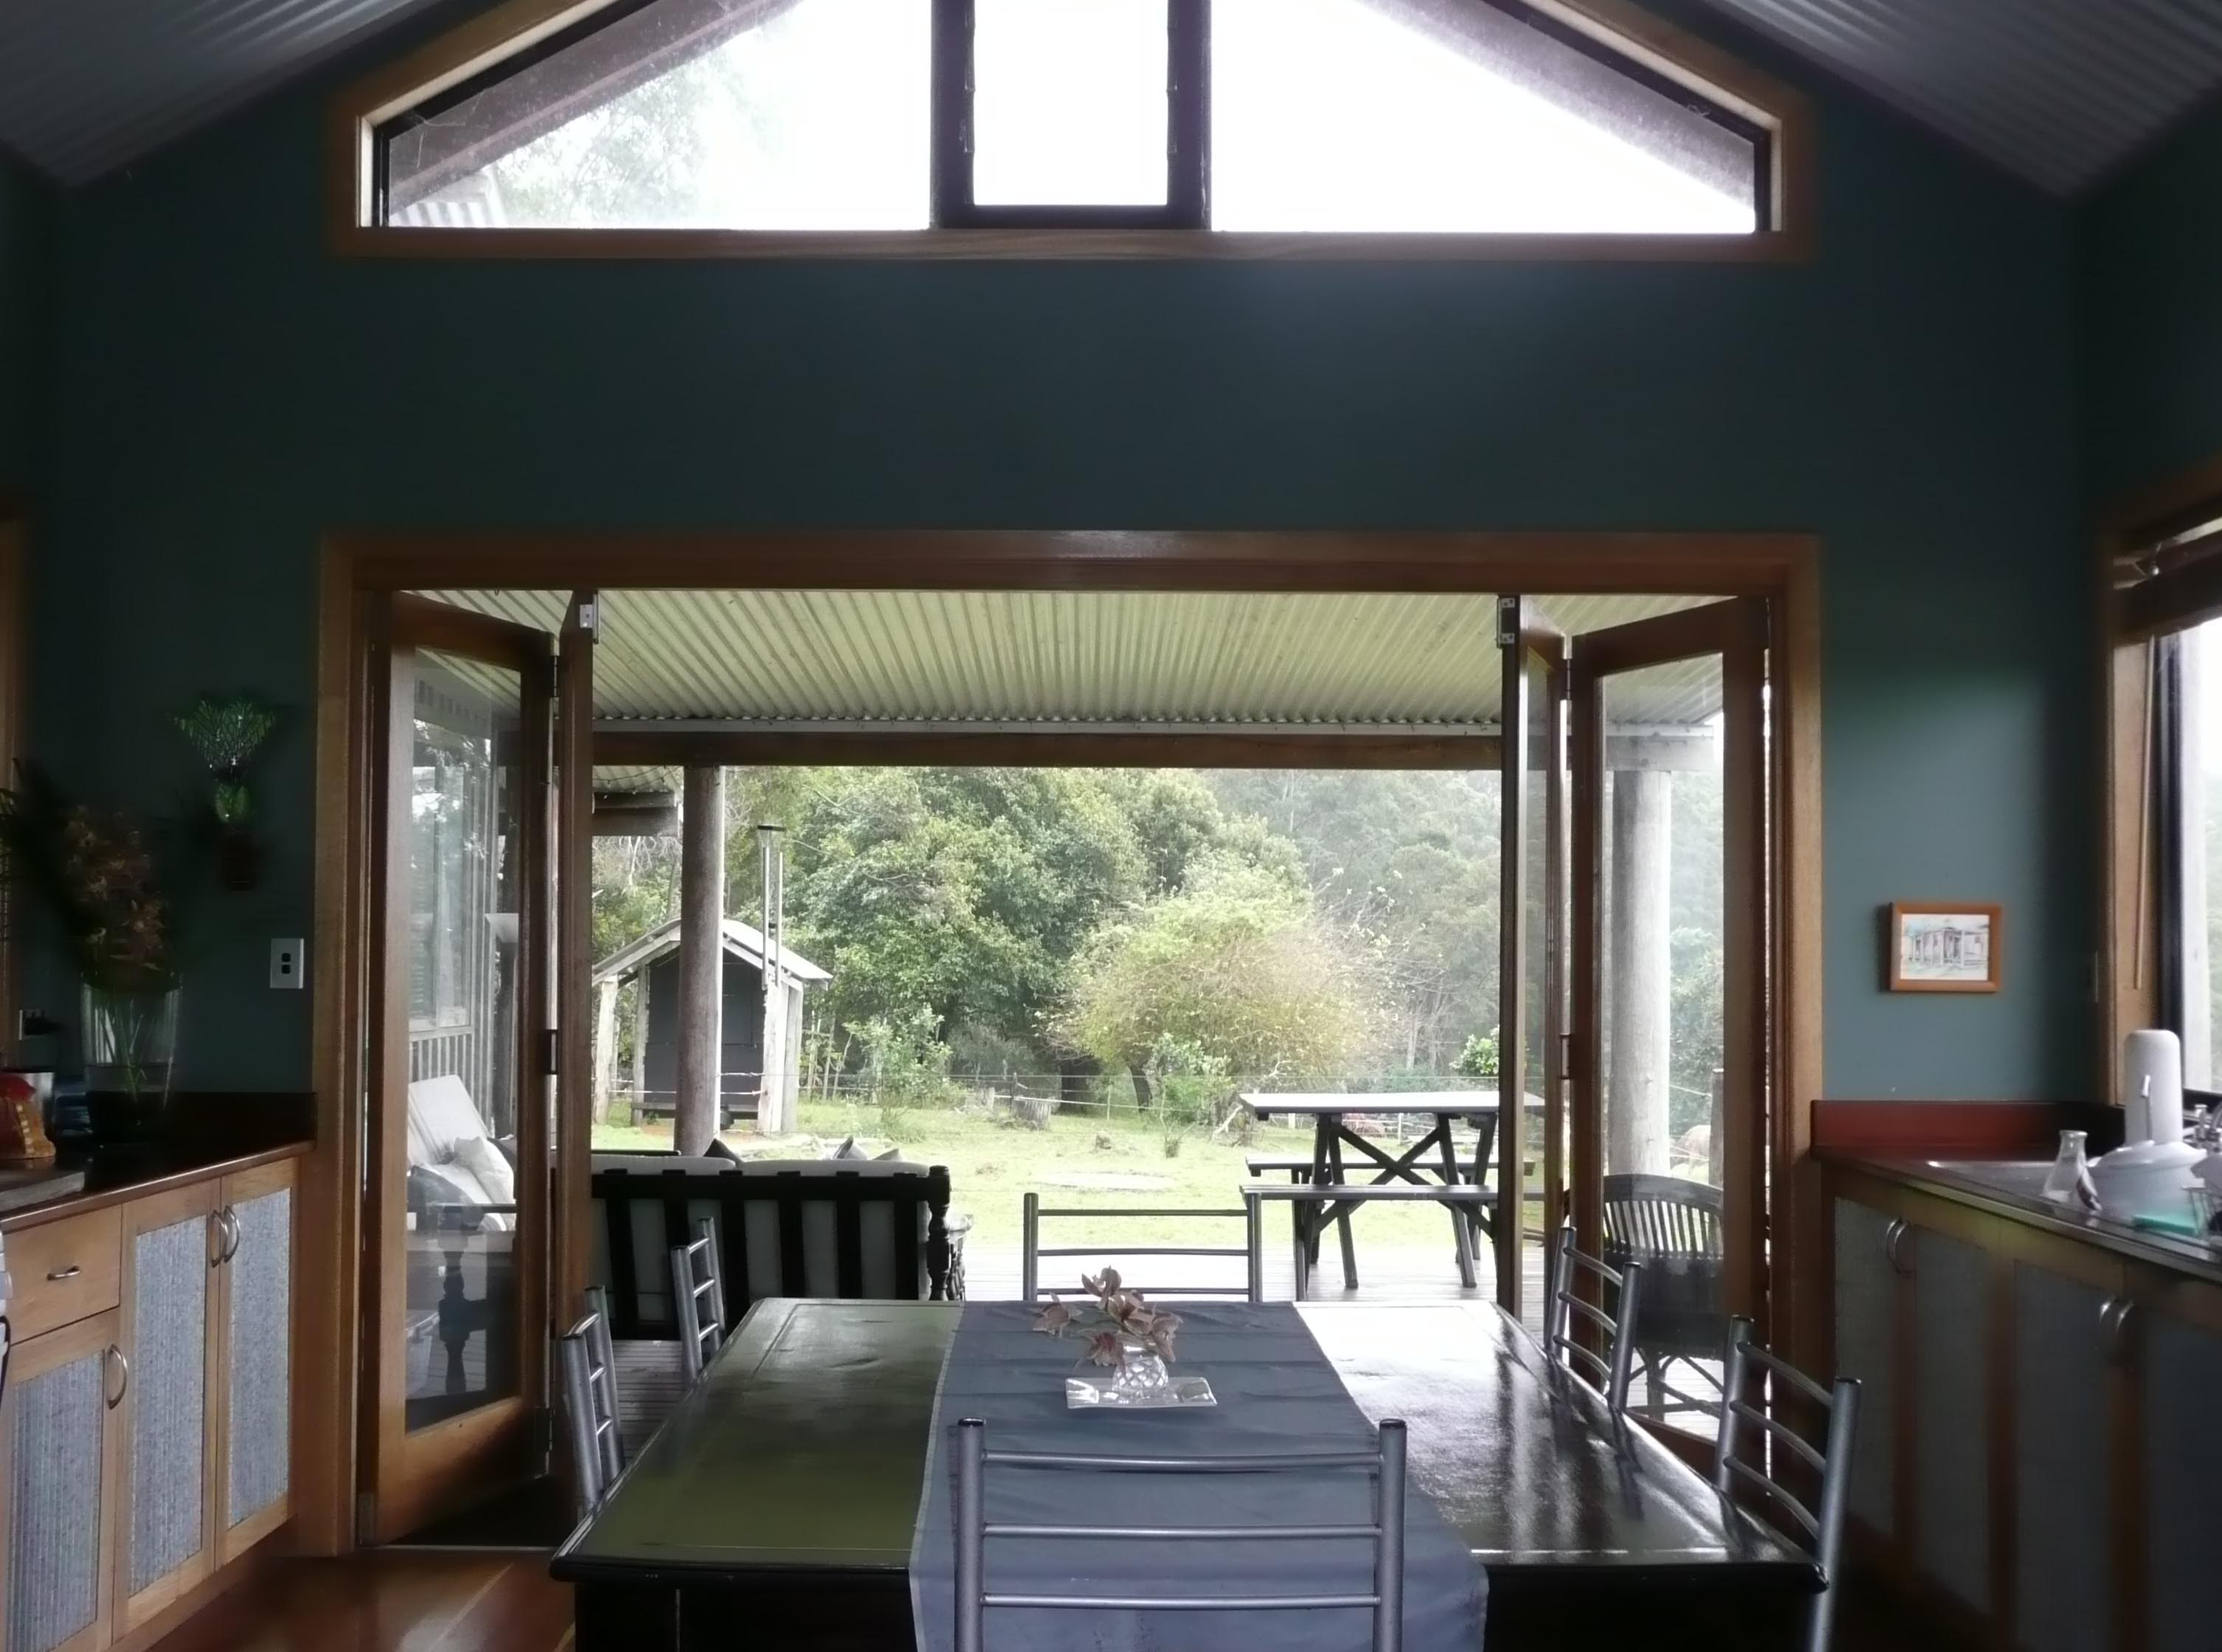 Bi Fold Doors In Kitchen Lead Out Onto Large Veranda